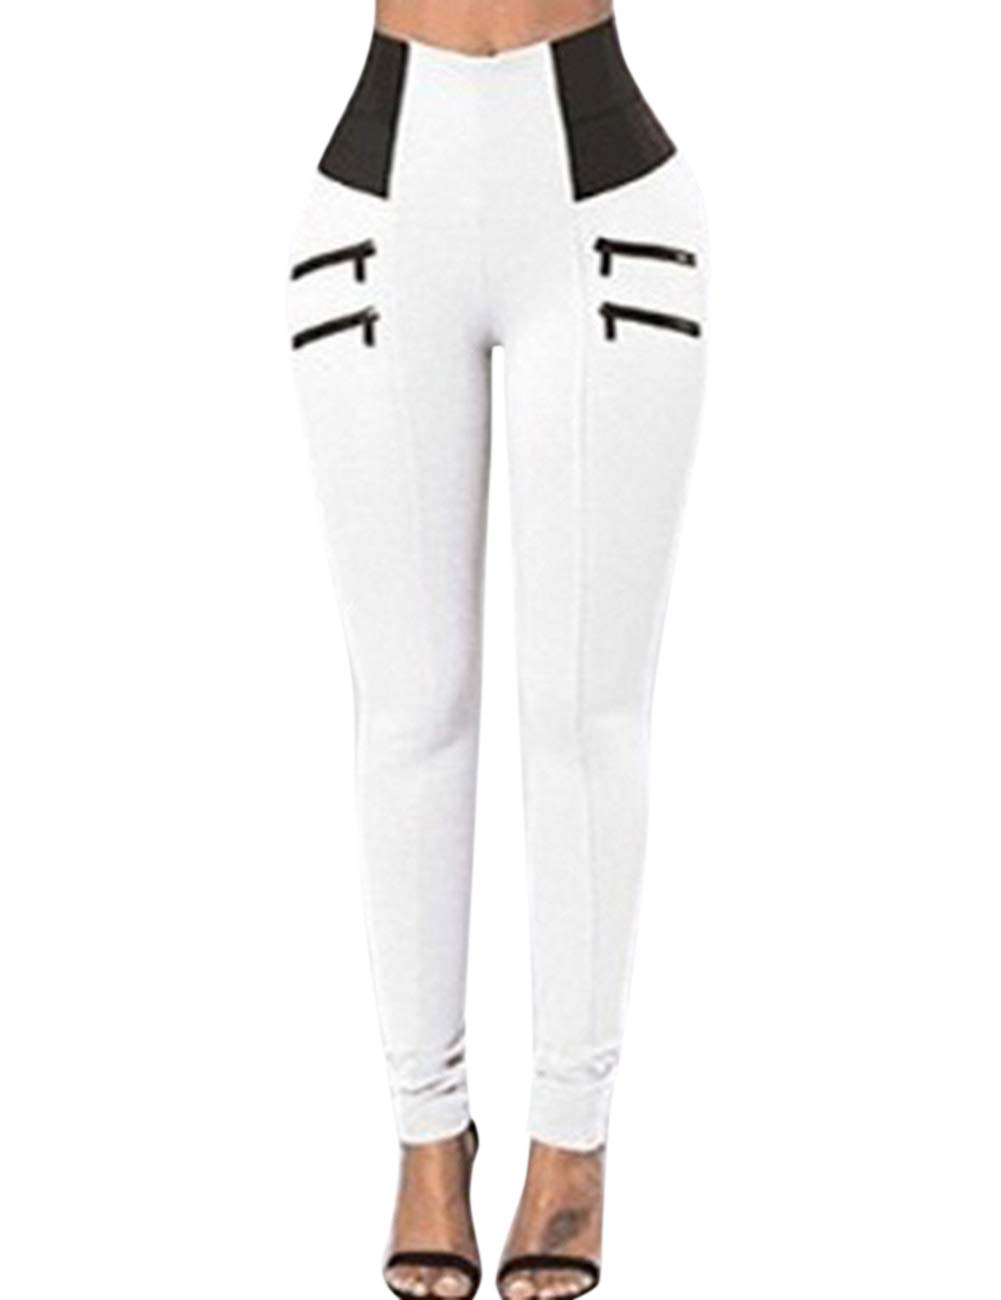 PinShang Women Solid Color High Waisted Leggings Super Soft Full Length Opaque Slim